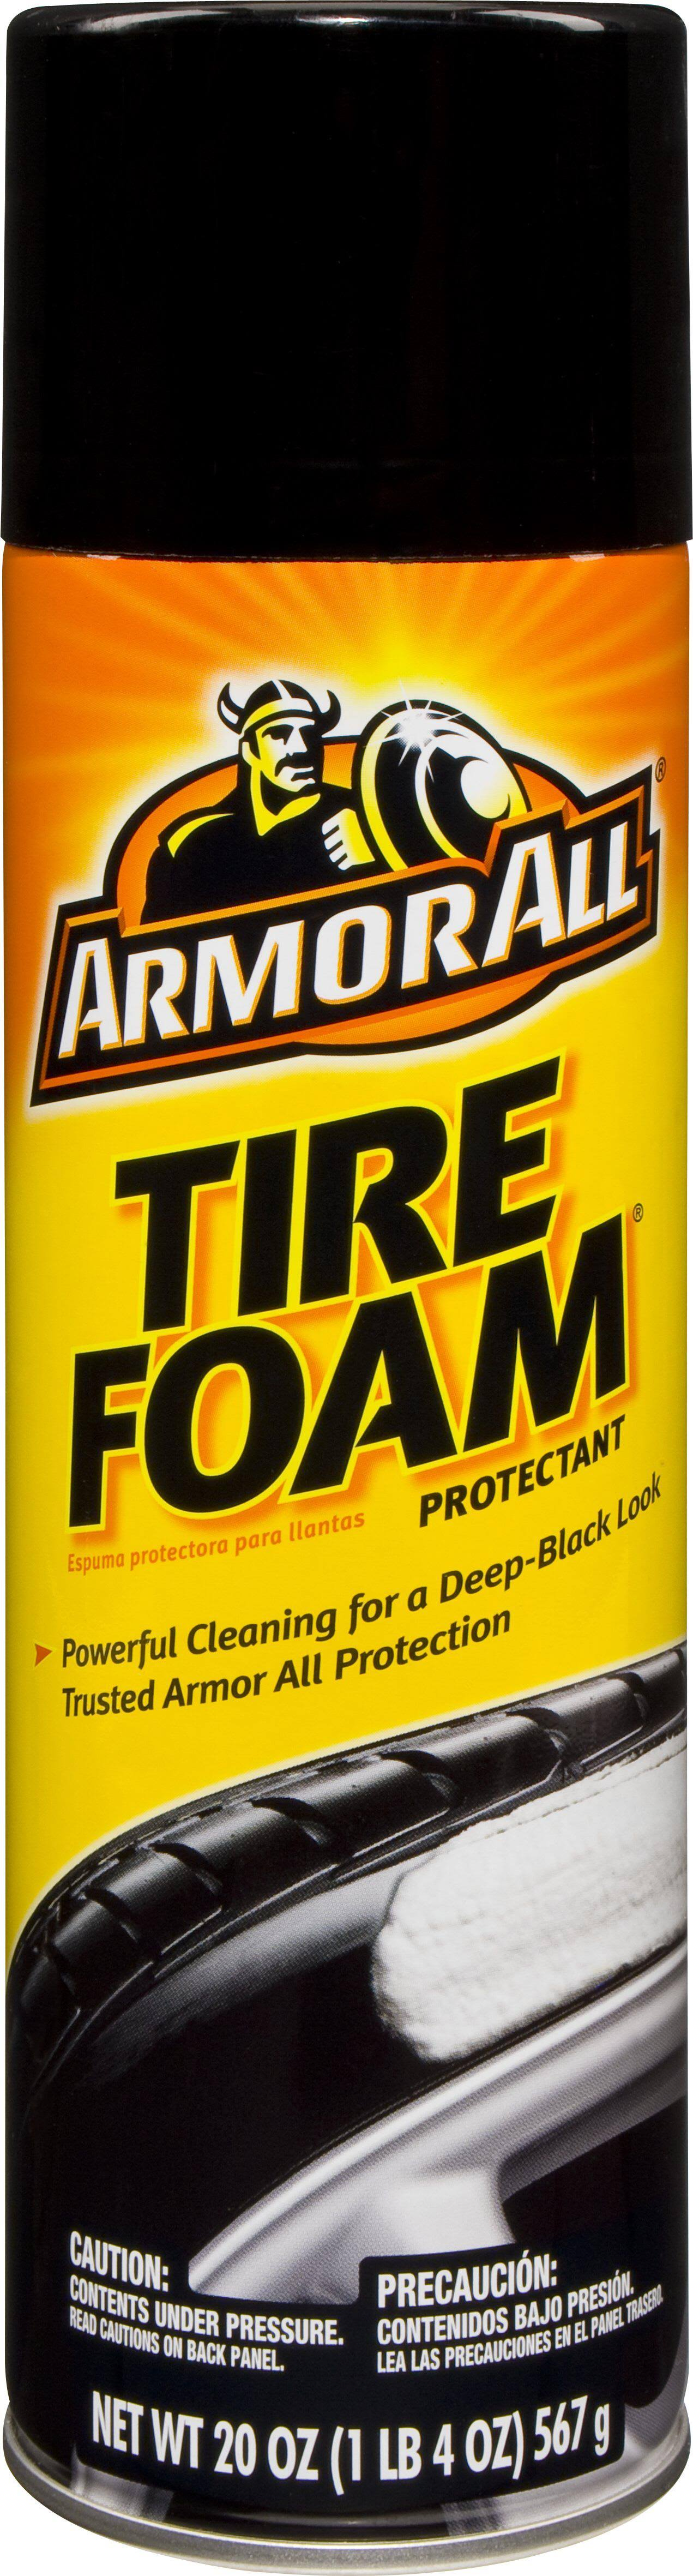 Armor All Tire Foam - 567g